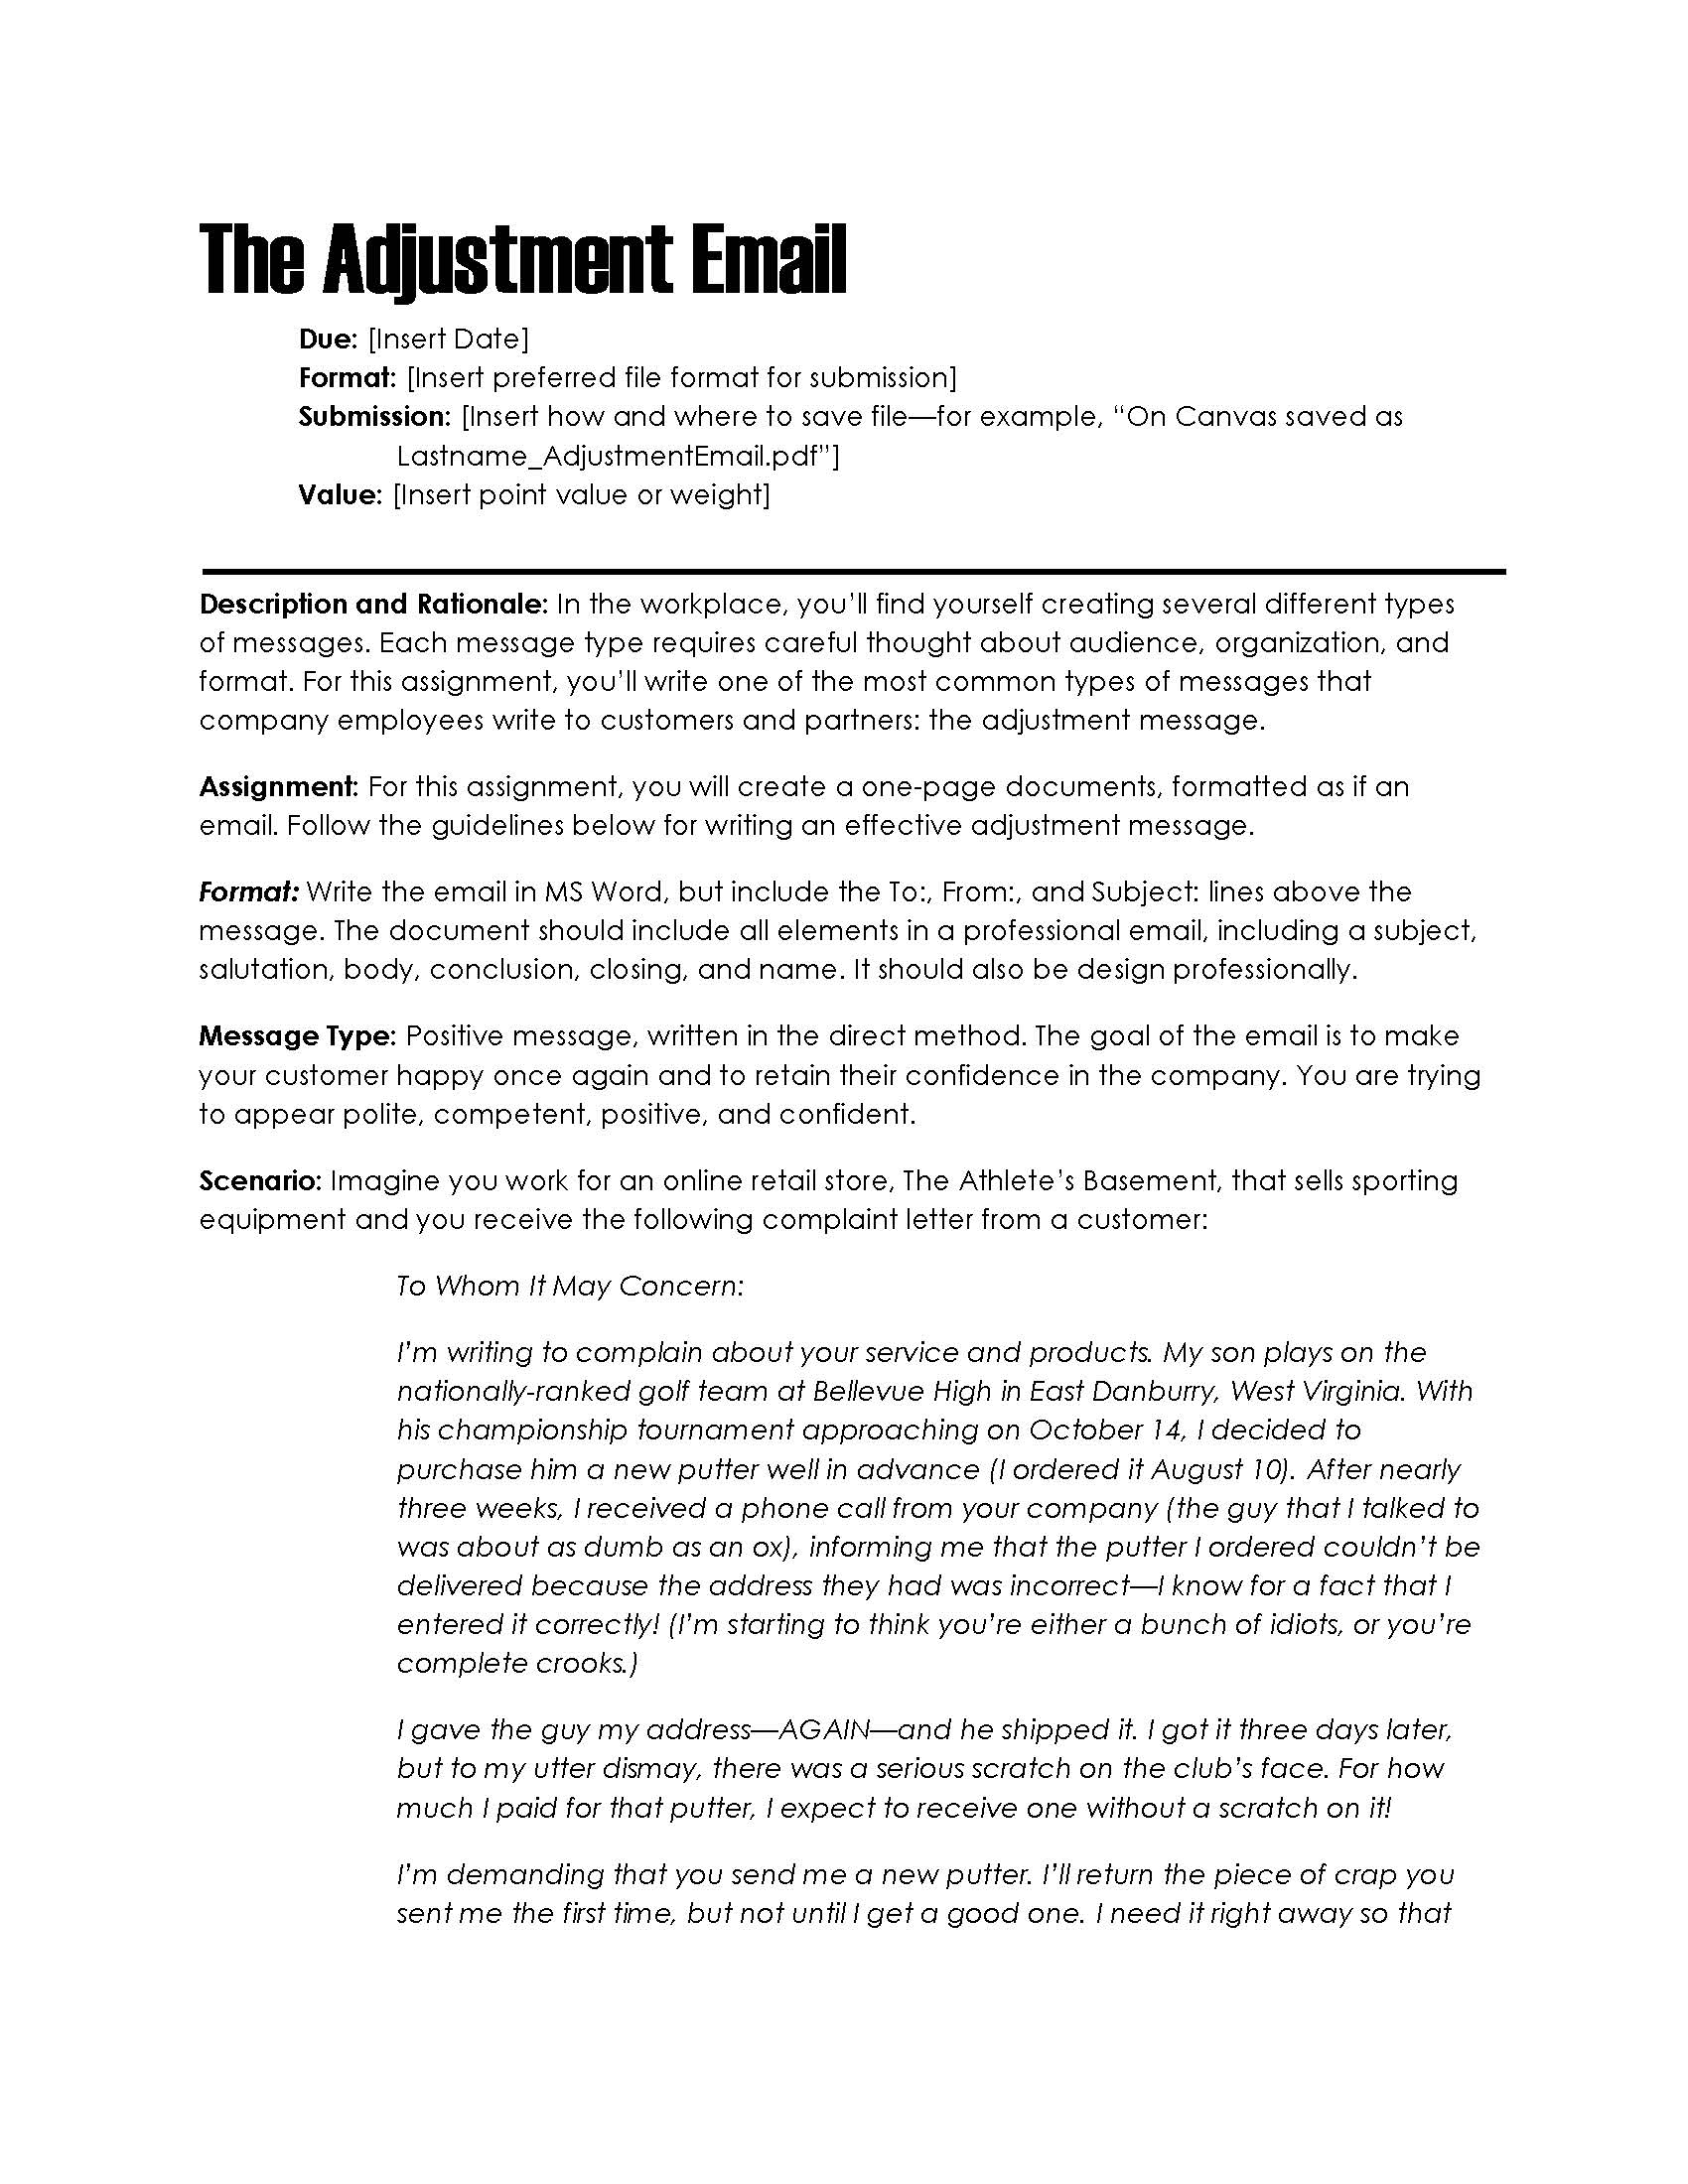 Downloads for teachers assignment descriptions the visual great for business communication courses this assignment helps students learn to write adjustment messages to alleviate upset customers and clients spiritdancerdesigns